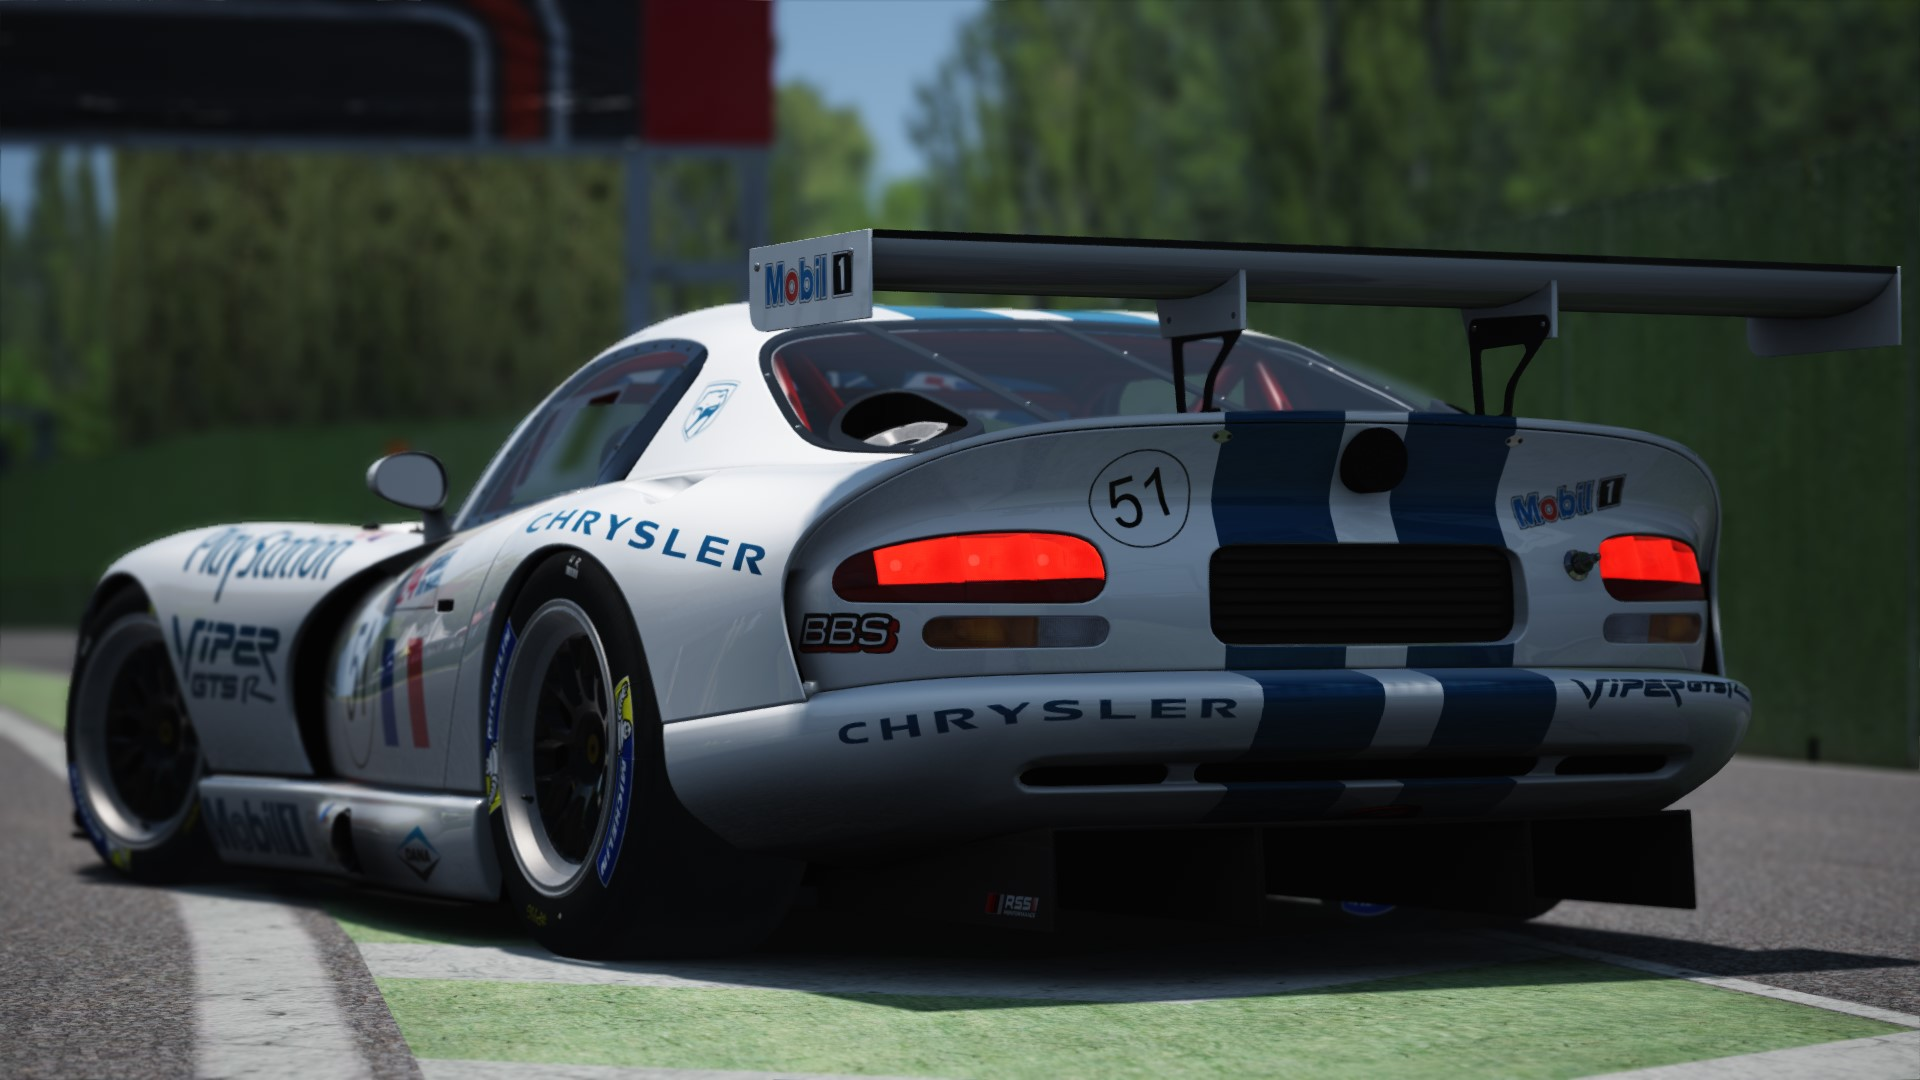 Screenshot_rss_gt_vortex_v10_imola_28-12-117-0-35-48.jpg